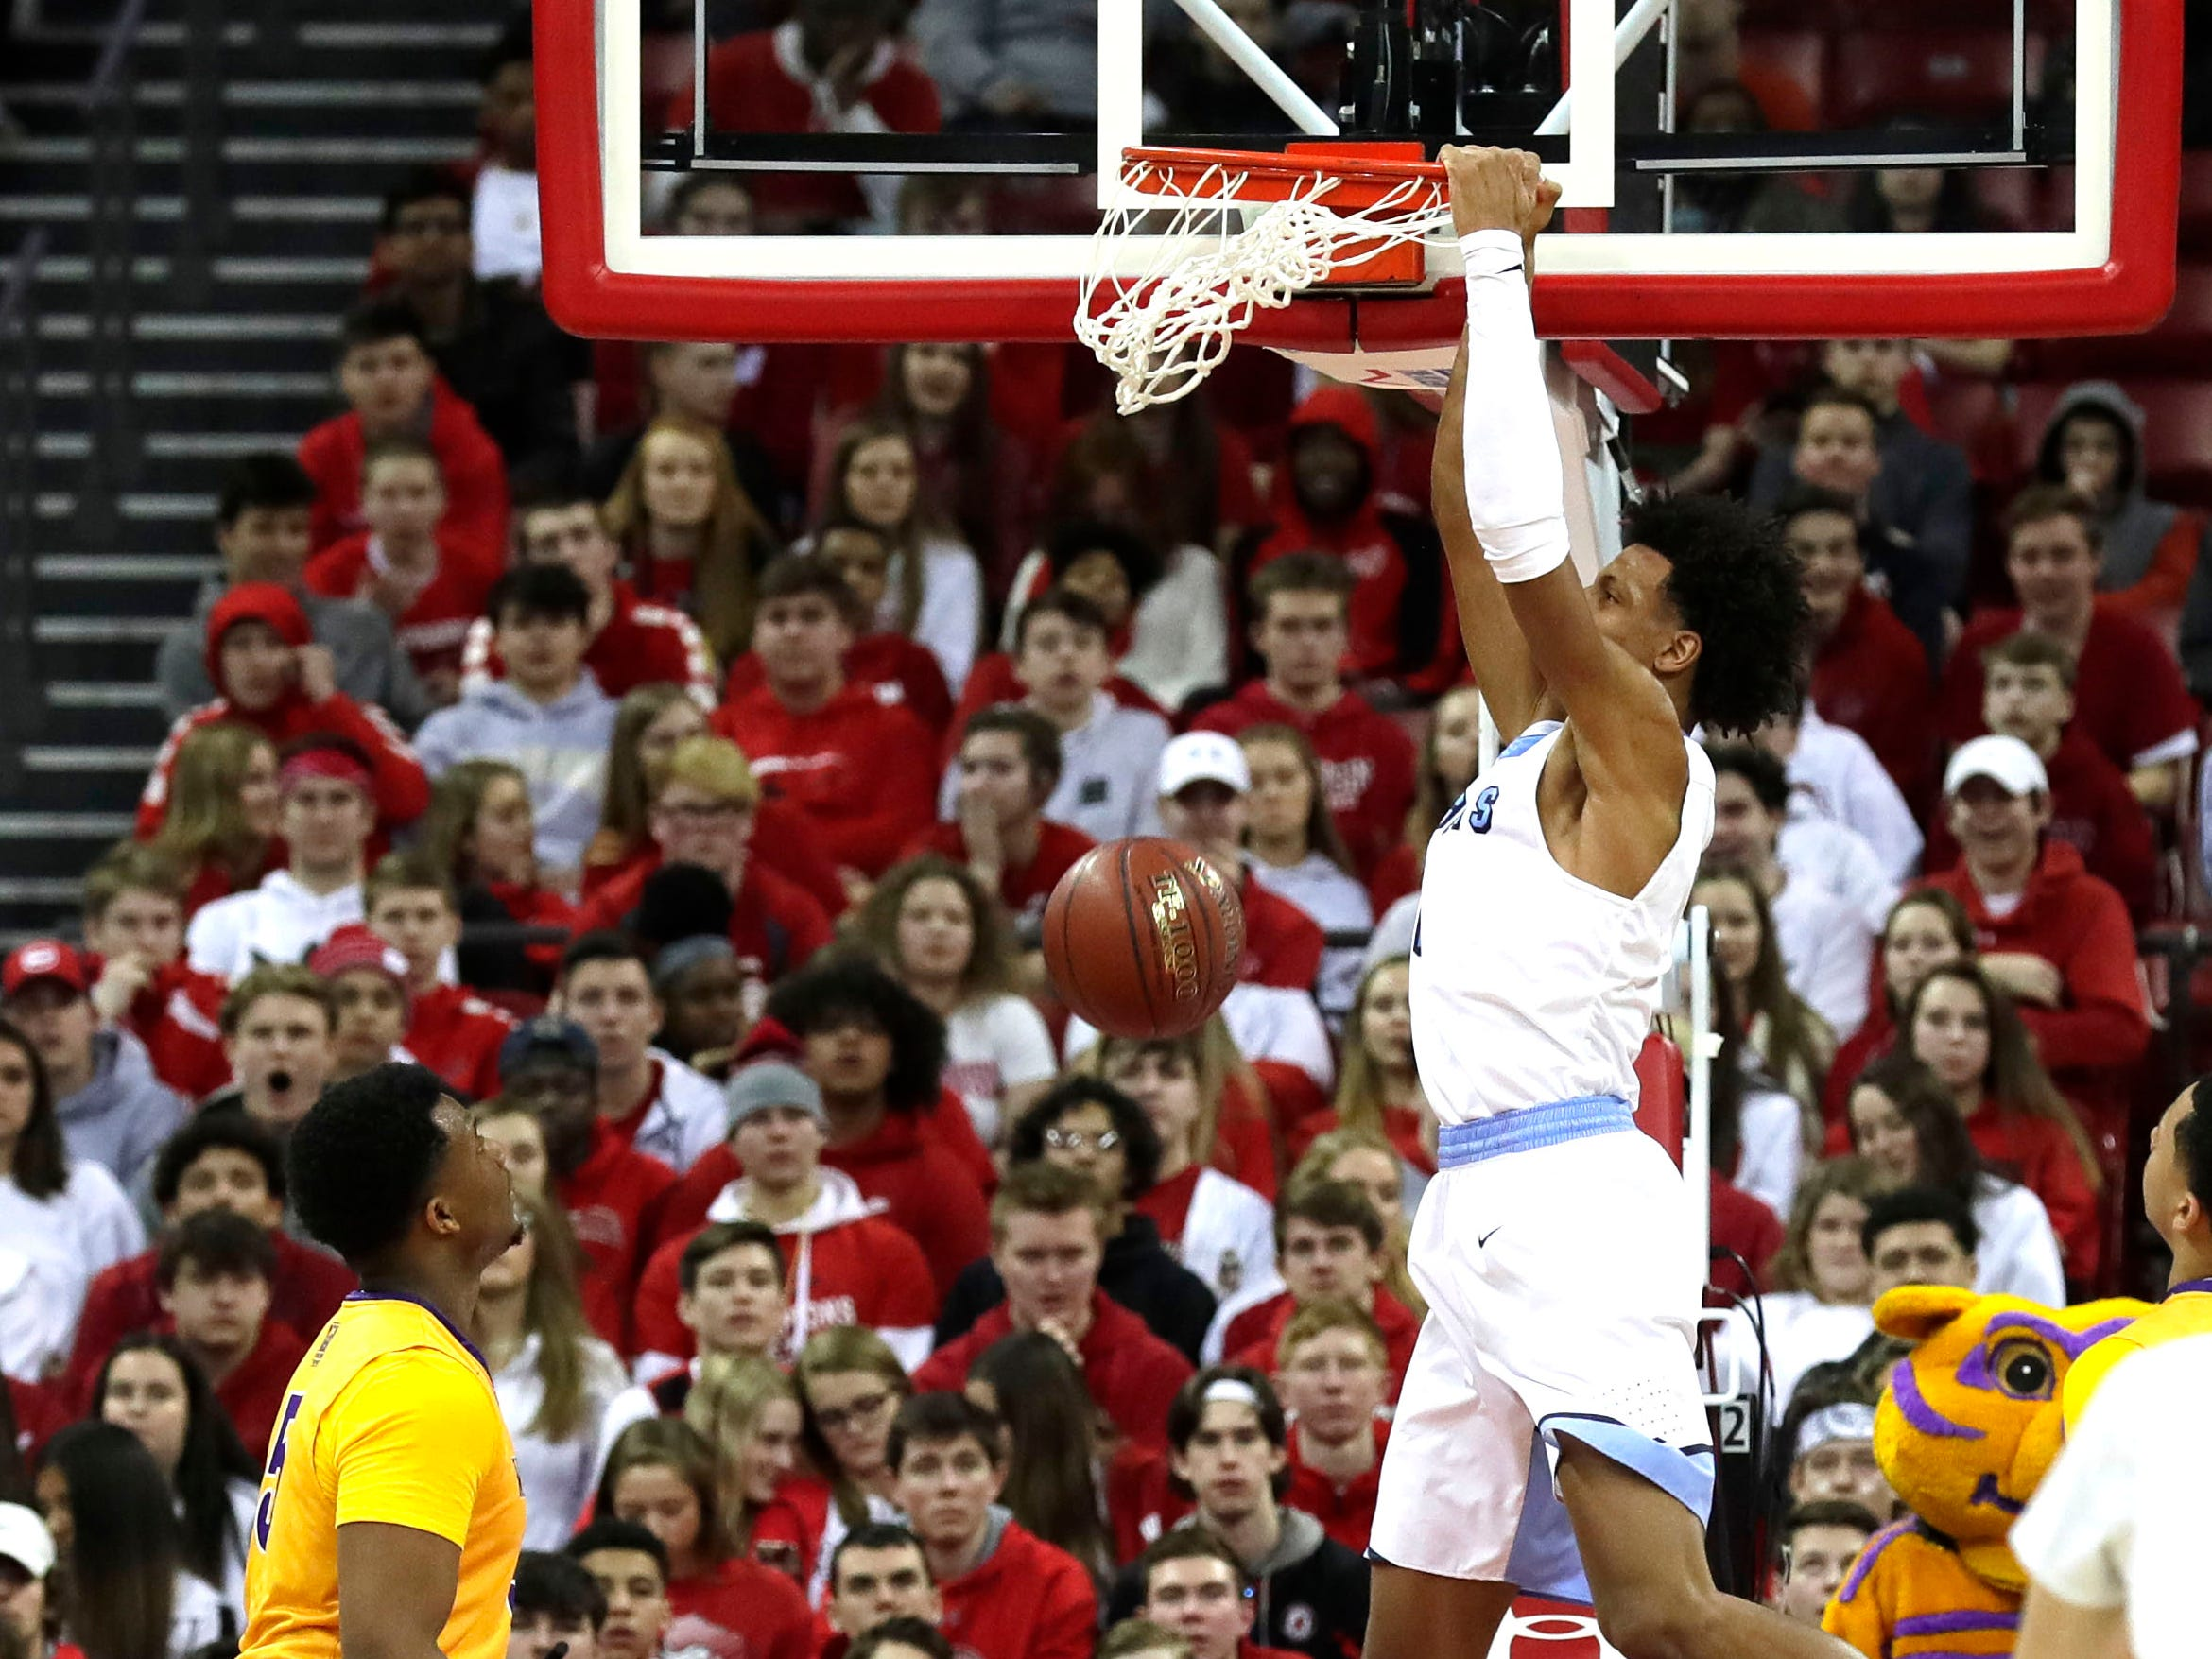 Nicolet's Jalen Johnson slam dunks the ball against Milwaukee Washington during the  D2 championship game at the WIAA 2019 Boys State Basketball Tournament in Madison, Wisconsin, Saturday, March 16, 2019.  Rick Wood/Milwaukee Journal Sentinel